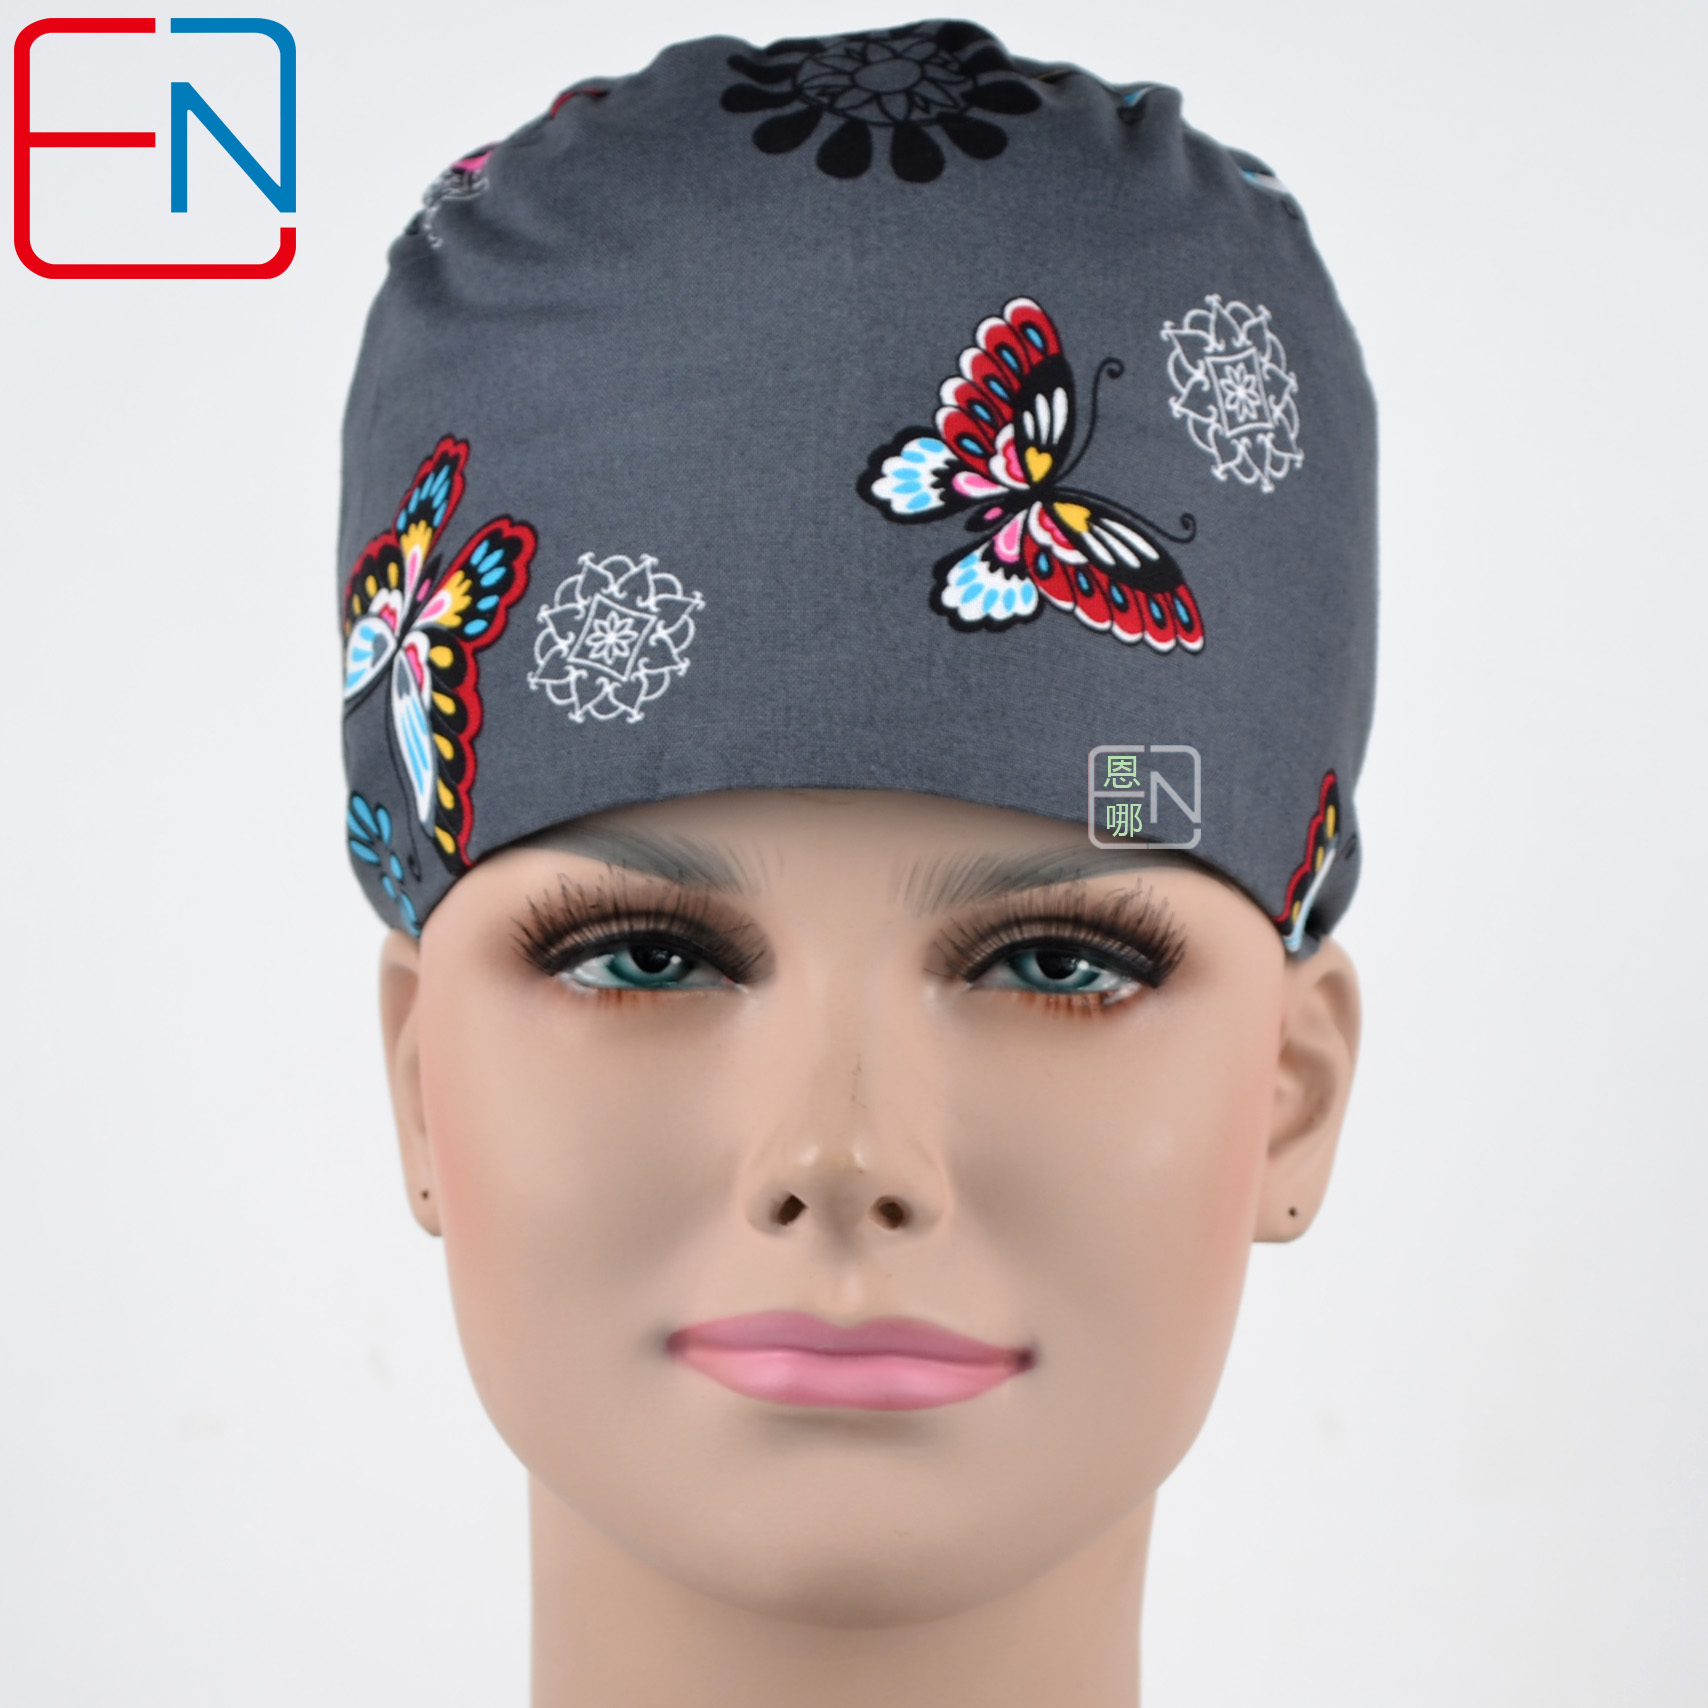 Hennar Womon Scrub Caps  100% Cotton Adjustable Elastic Bands Surgical Scrub Caps Print Medical Caps In Grey With Butterfly